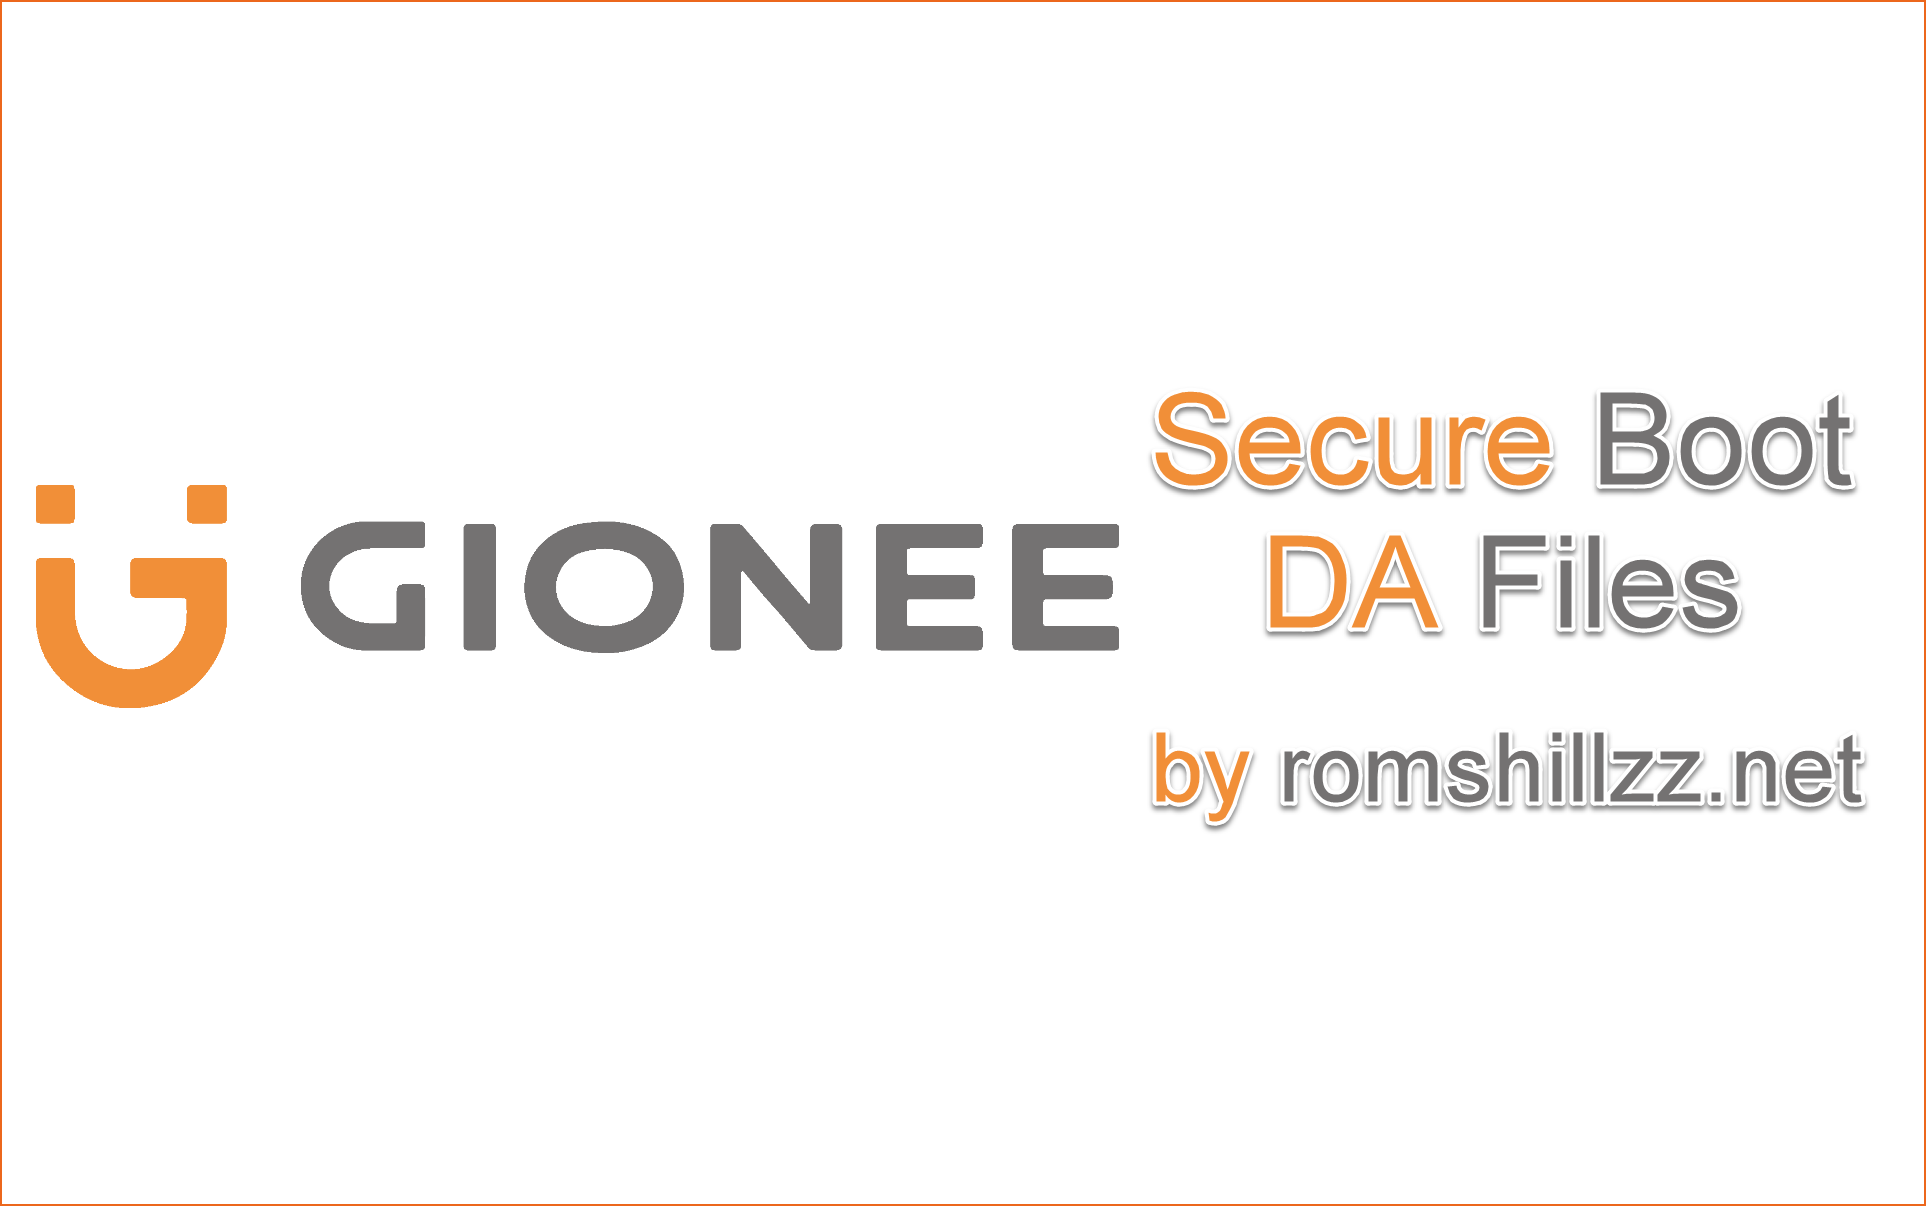 gionee-secure-boot.png